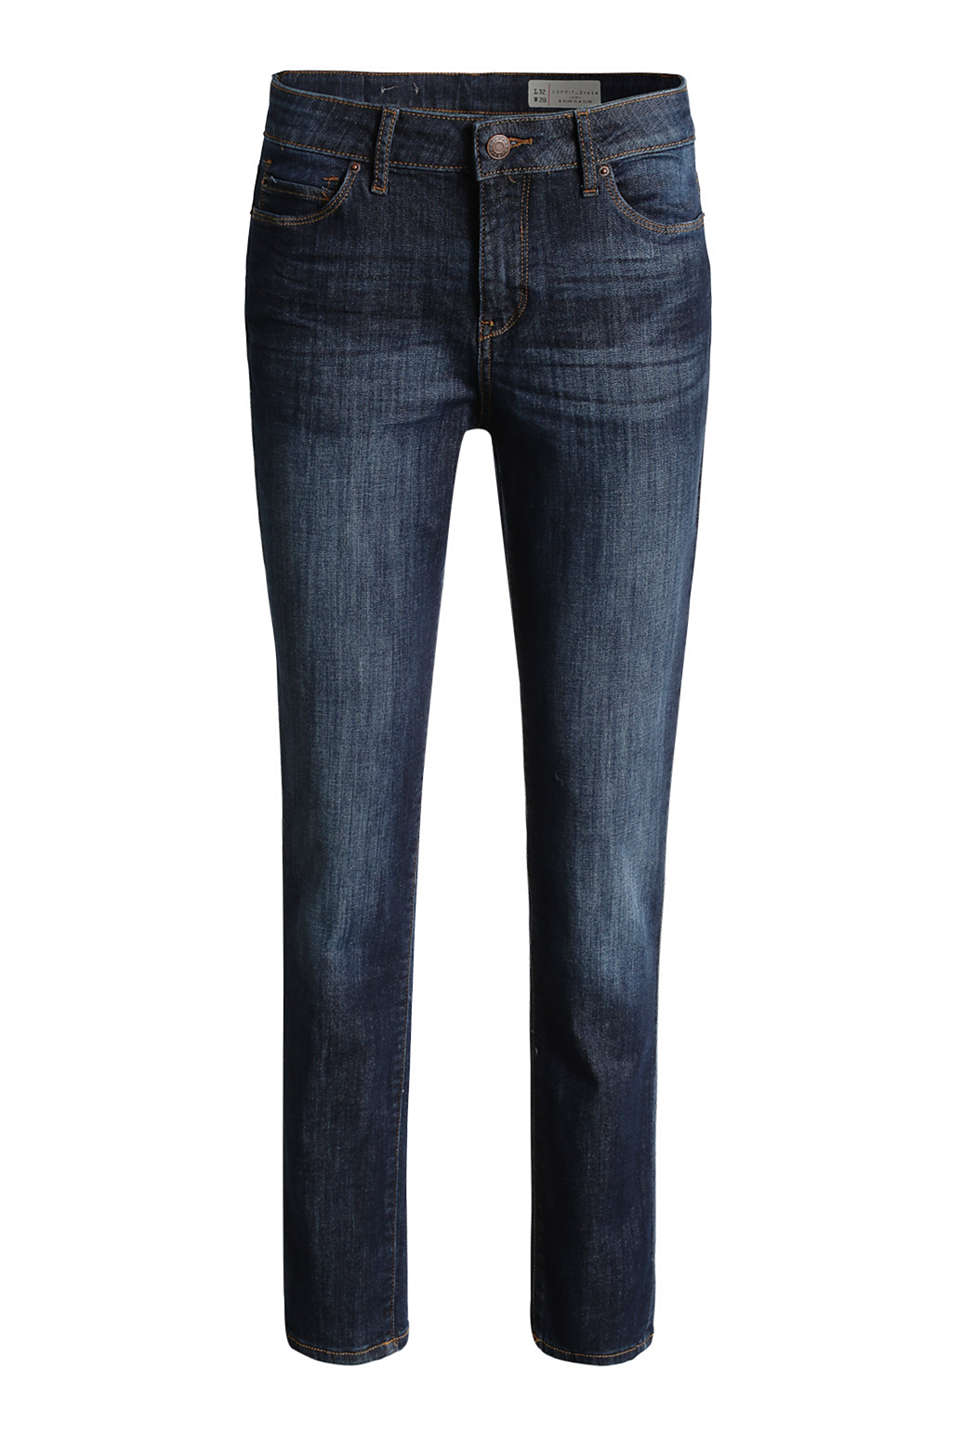 schönen Glanz große Vielfalt Modelle stabile Qualität Esprit - high-waisted jeans with a higher waistband at our ...